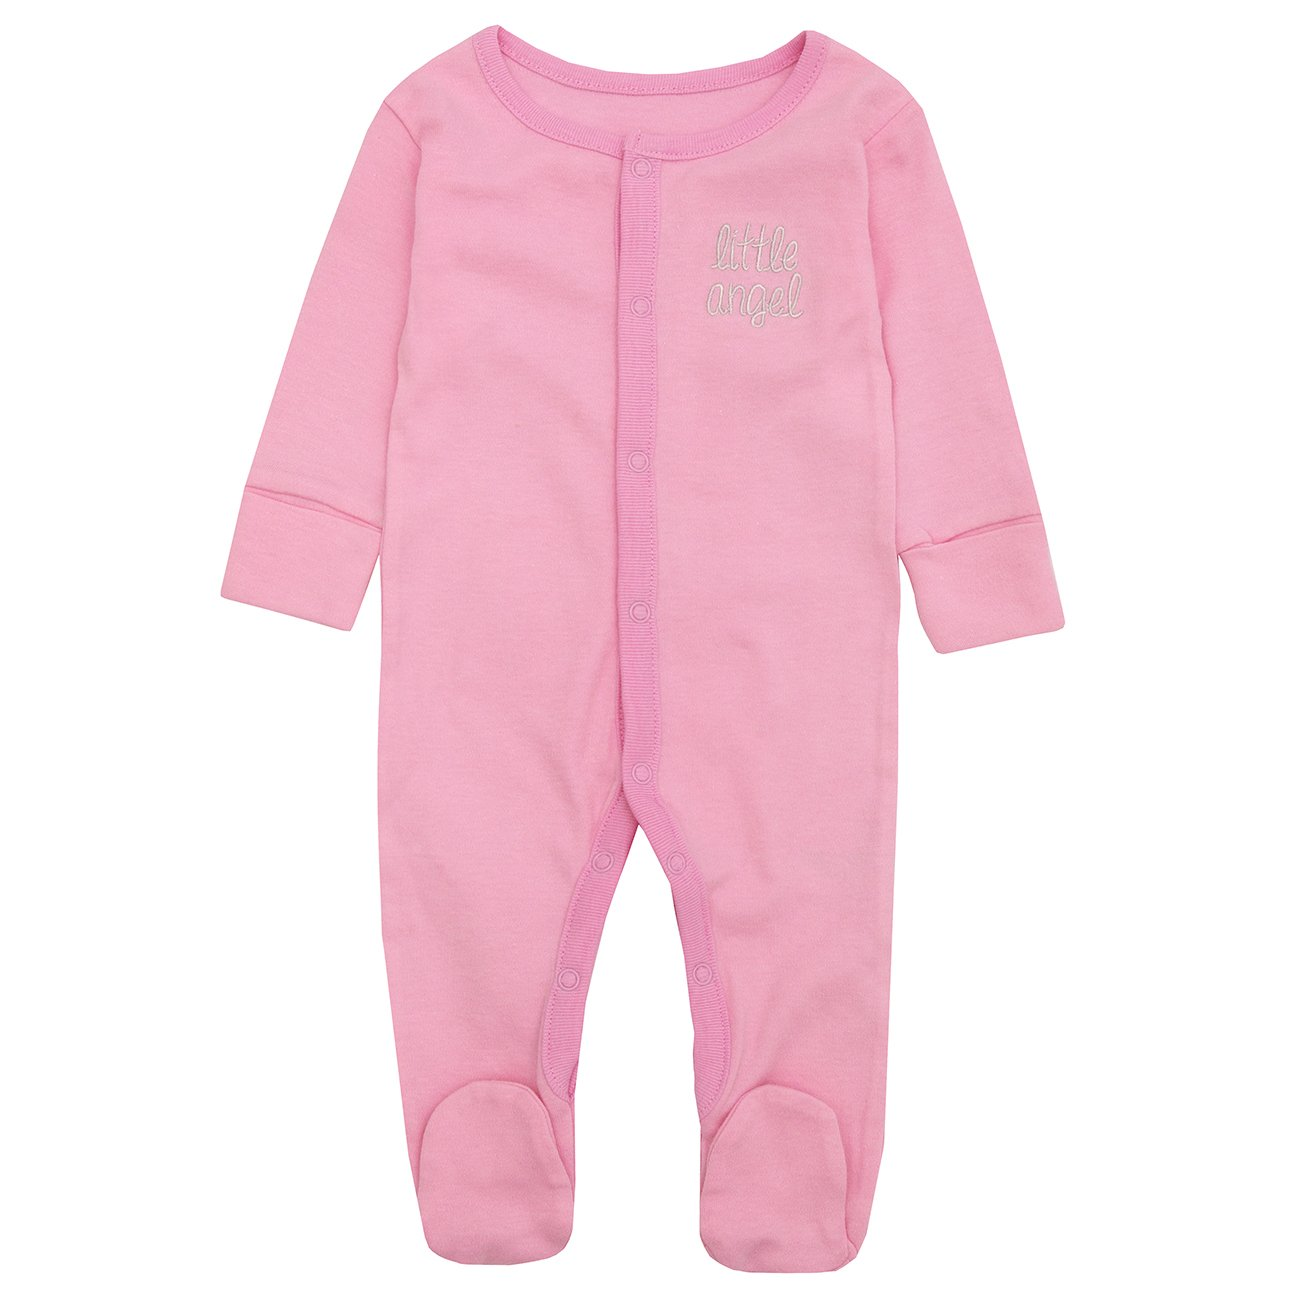 BABY TOWN BabyTown Babies Little Angel Sleepsuit Baum Trading